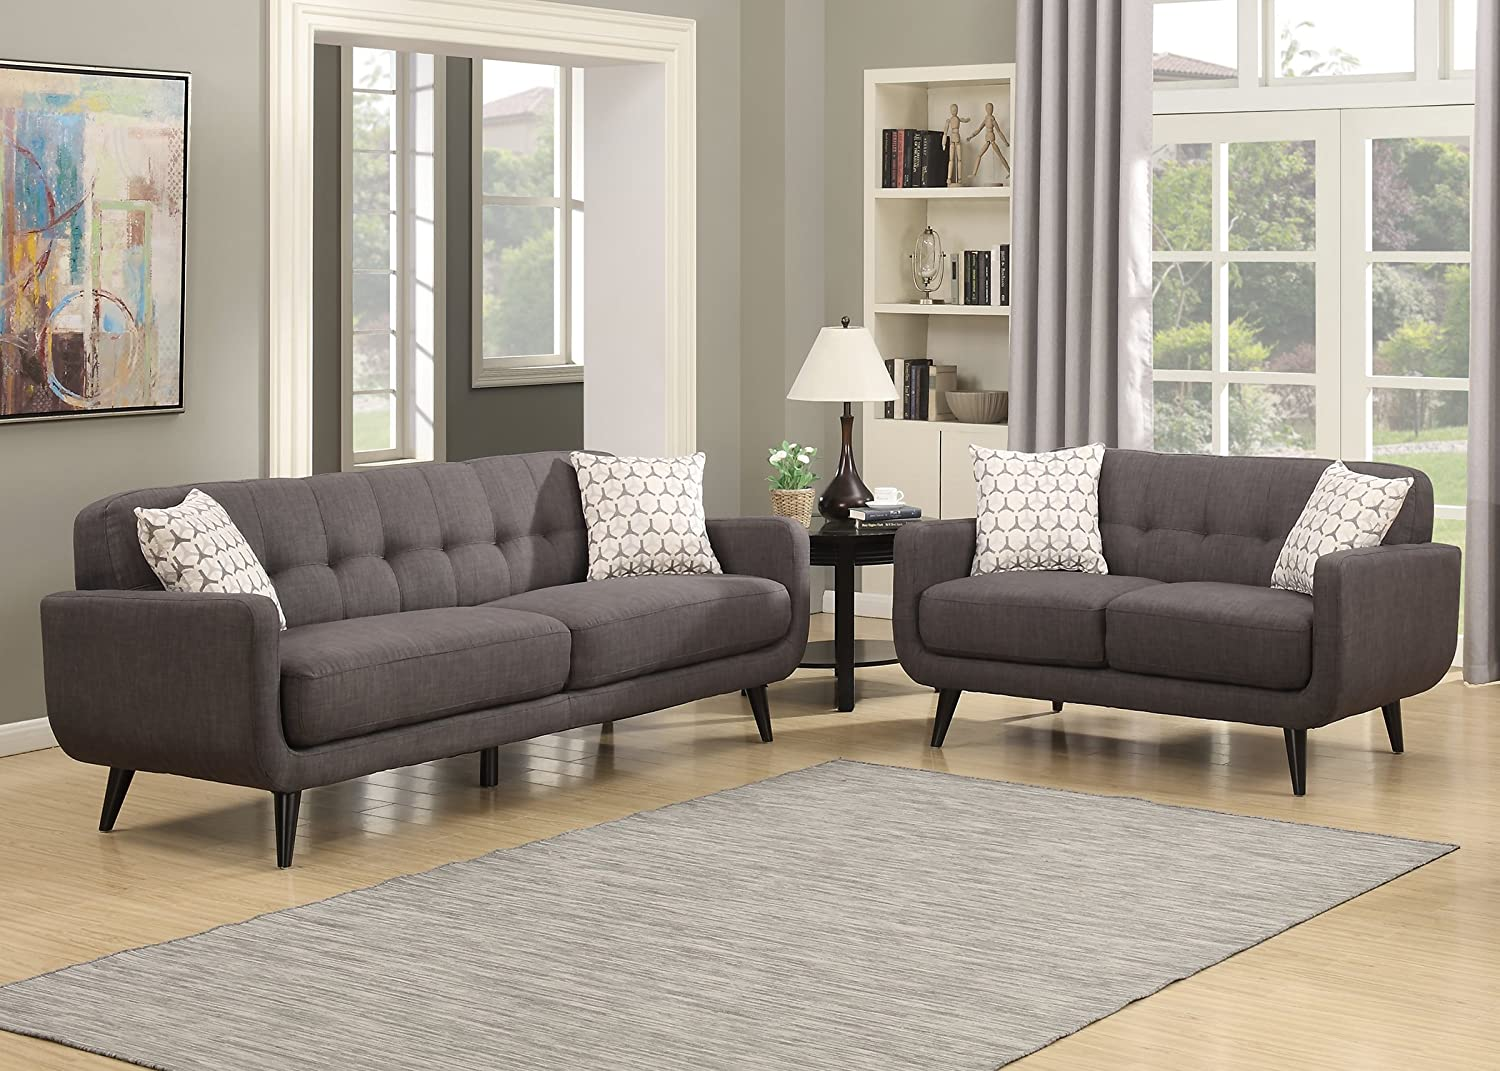 Amazon.com: AC Pacific Crystal Collection Upholstered Charcoal Mid Century 2  Piece Living Room Set With Tufted Sofa And Loveseat And 4 Accent Pillows,  ... Part 41